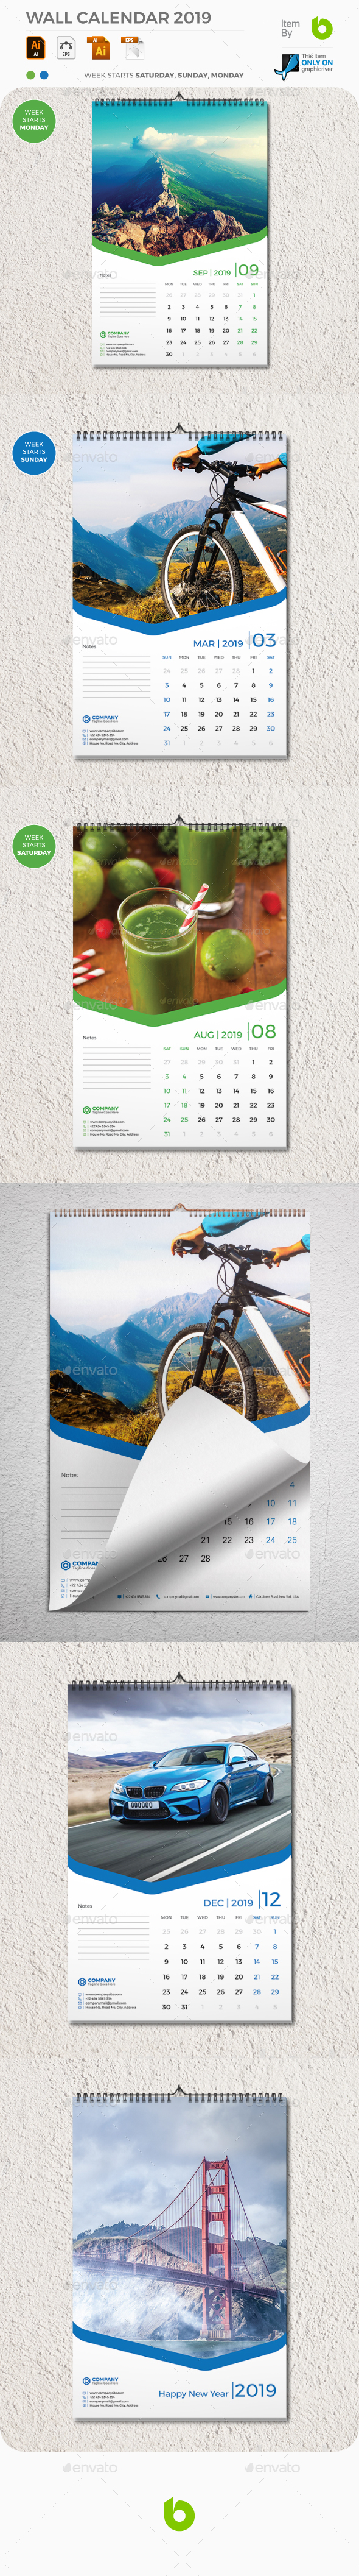 Wall Calendar 2019 - Calendars Stationery